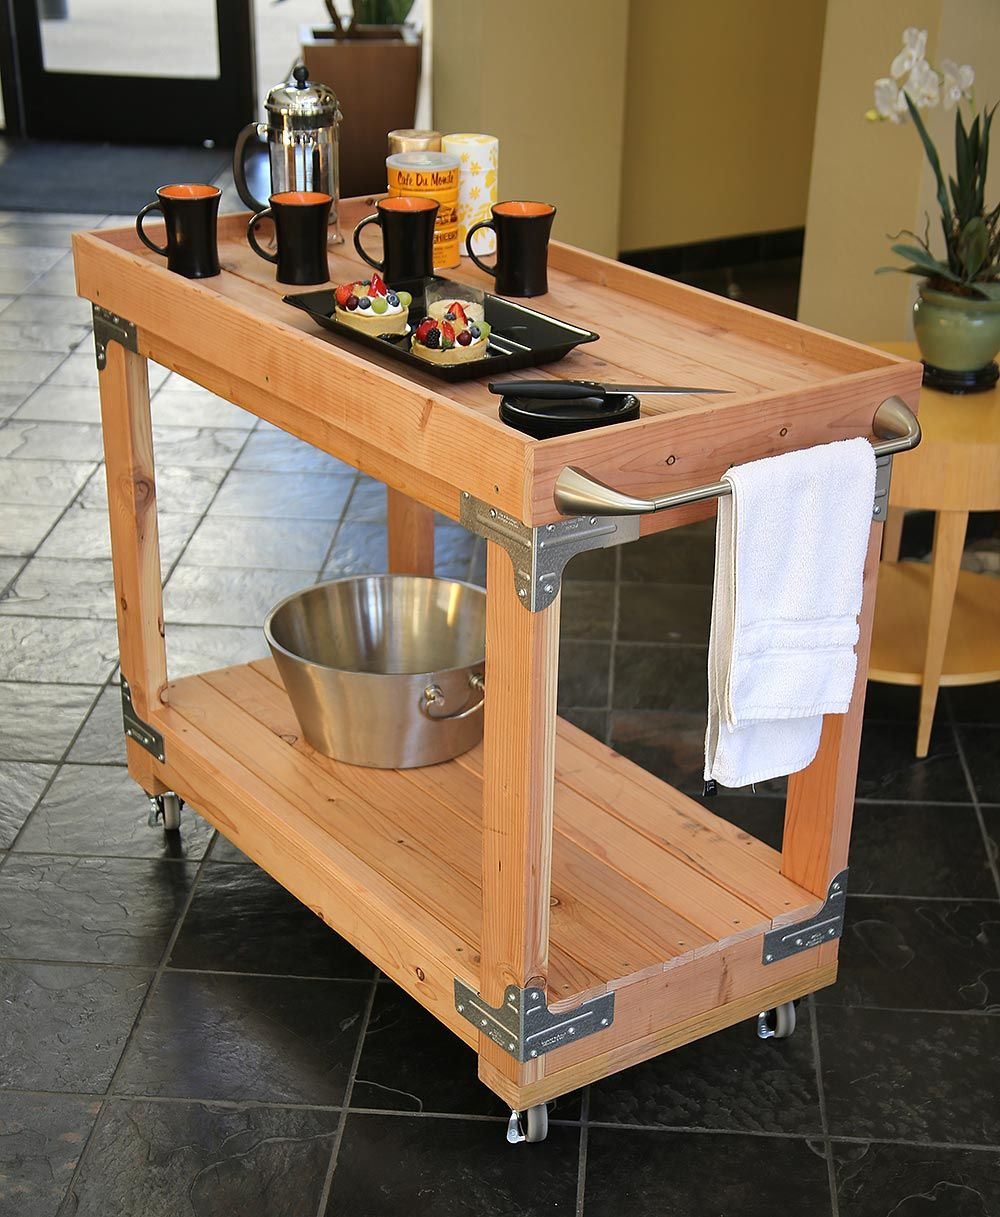 Diy Bar Cart With Simpson Strong Tie Workbench Shelving